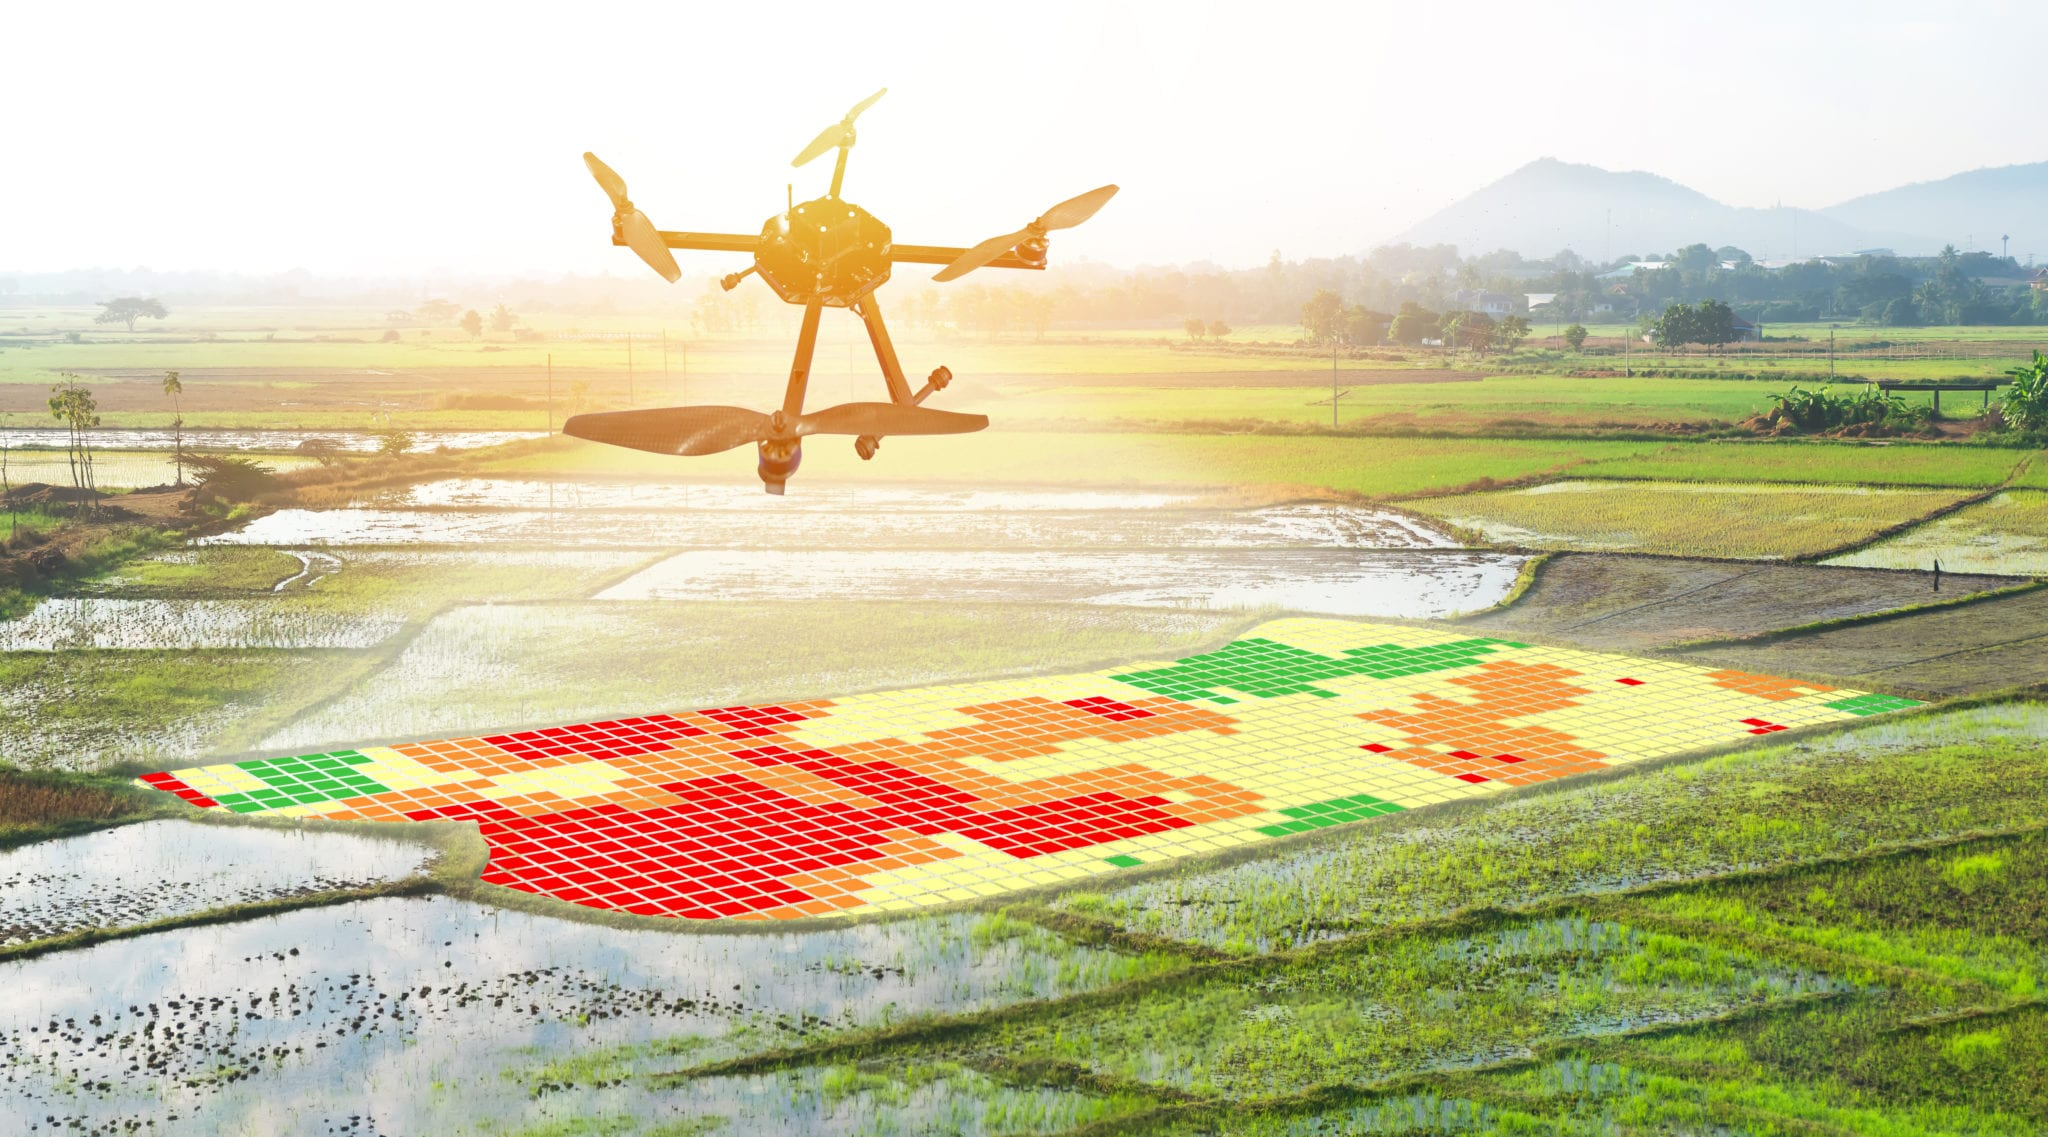 A drone helicopter flying over a digitized farm field representing data collection